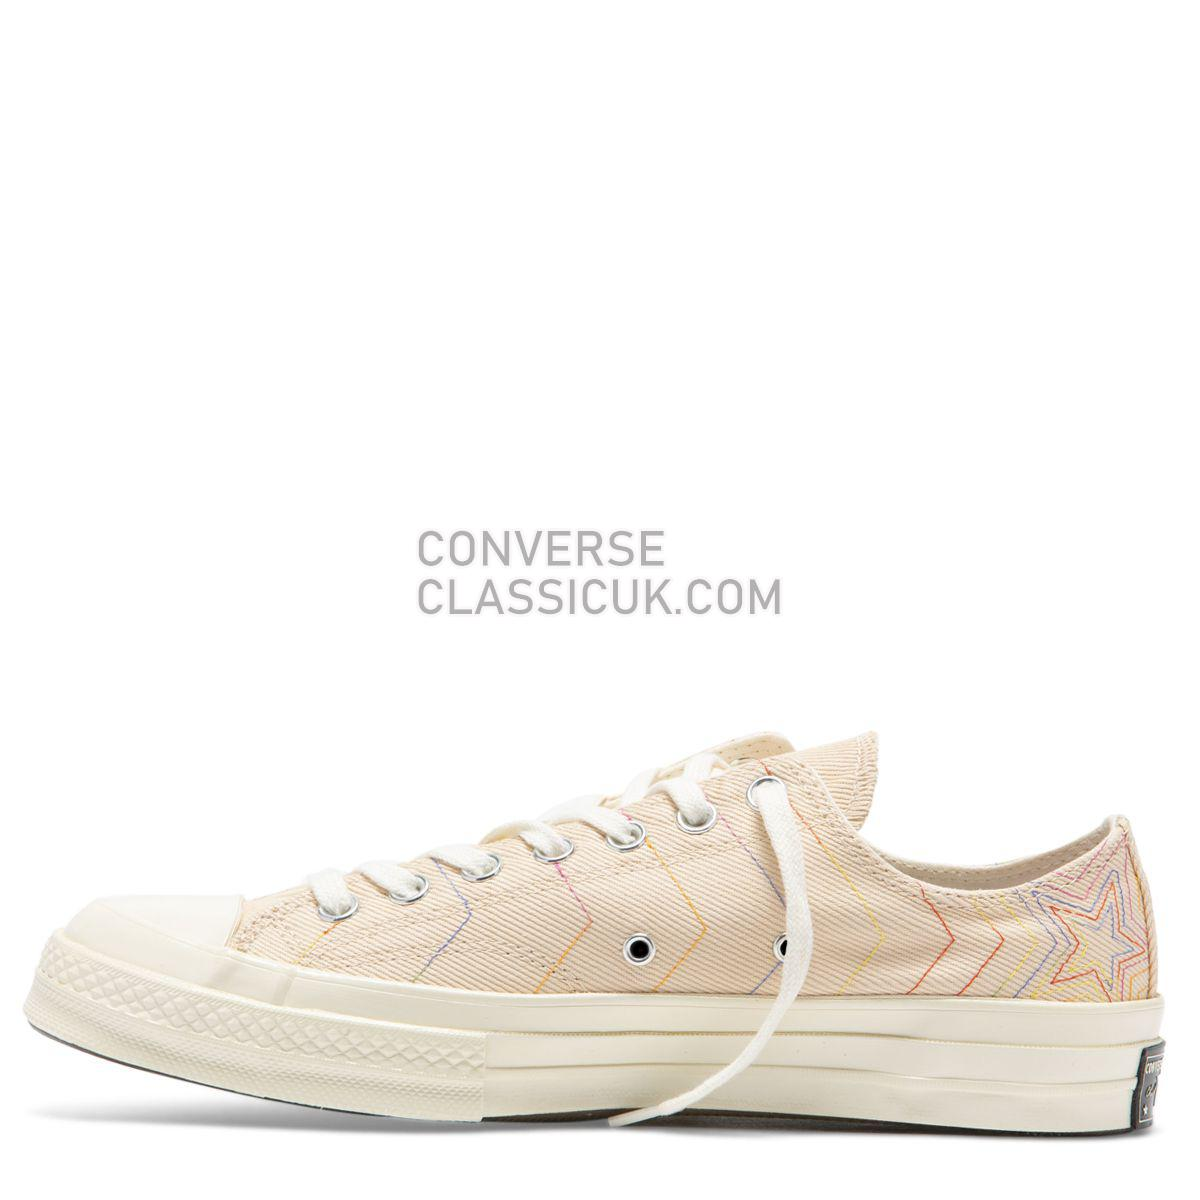 Converse Chuck Taylor All Star 70 Rainbow Low Top Light Bisque Mens Womens Unisex 164966 Light Bisque/Pale Putty/Egret Shoes